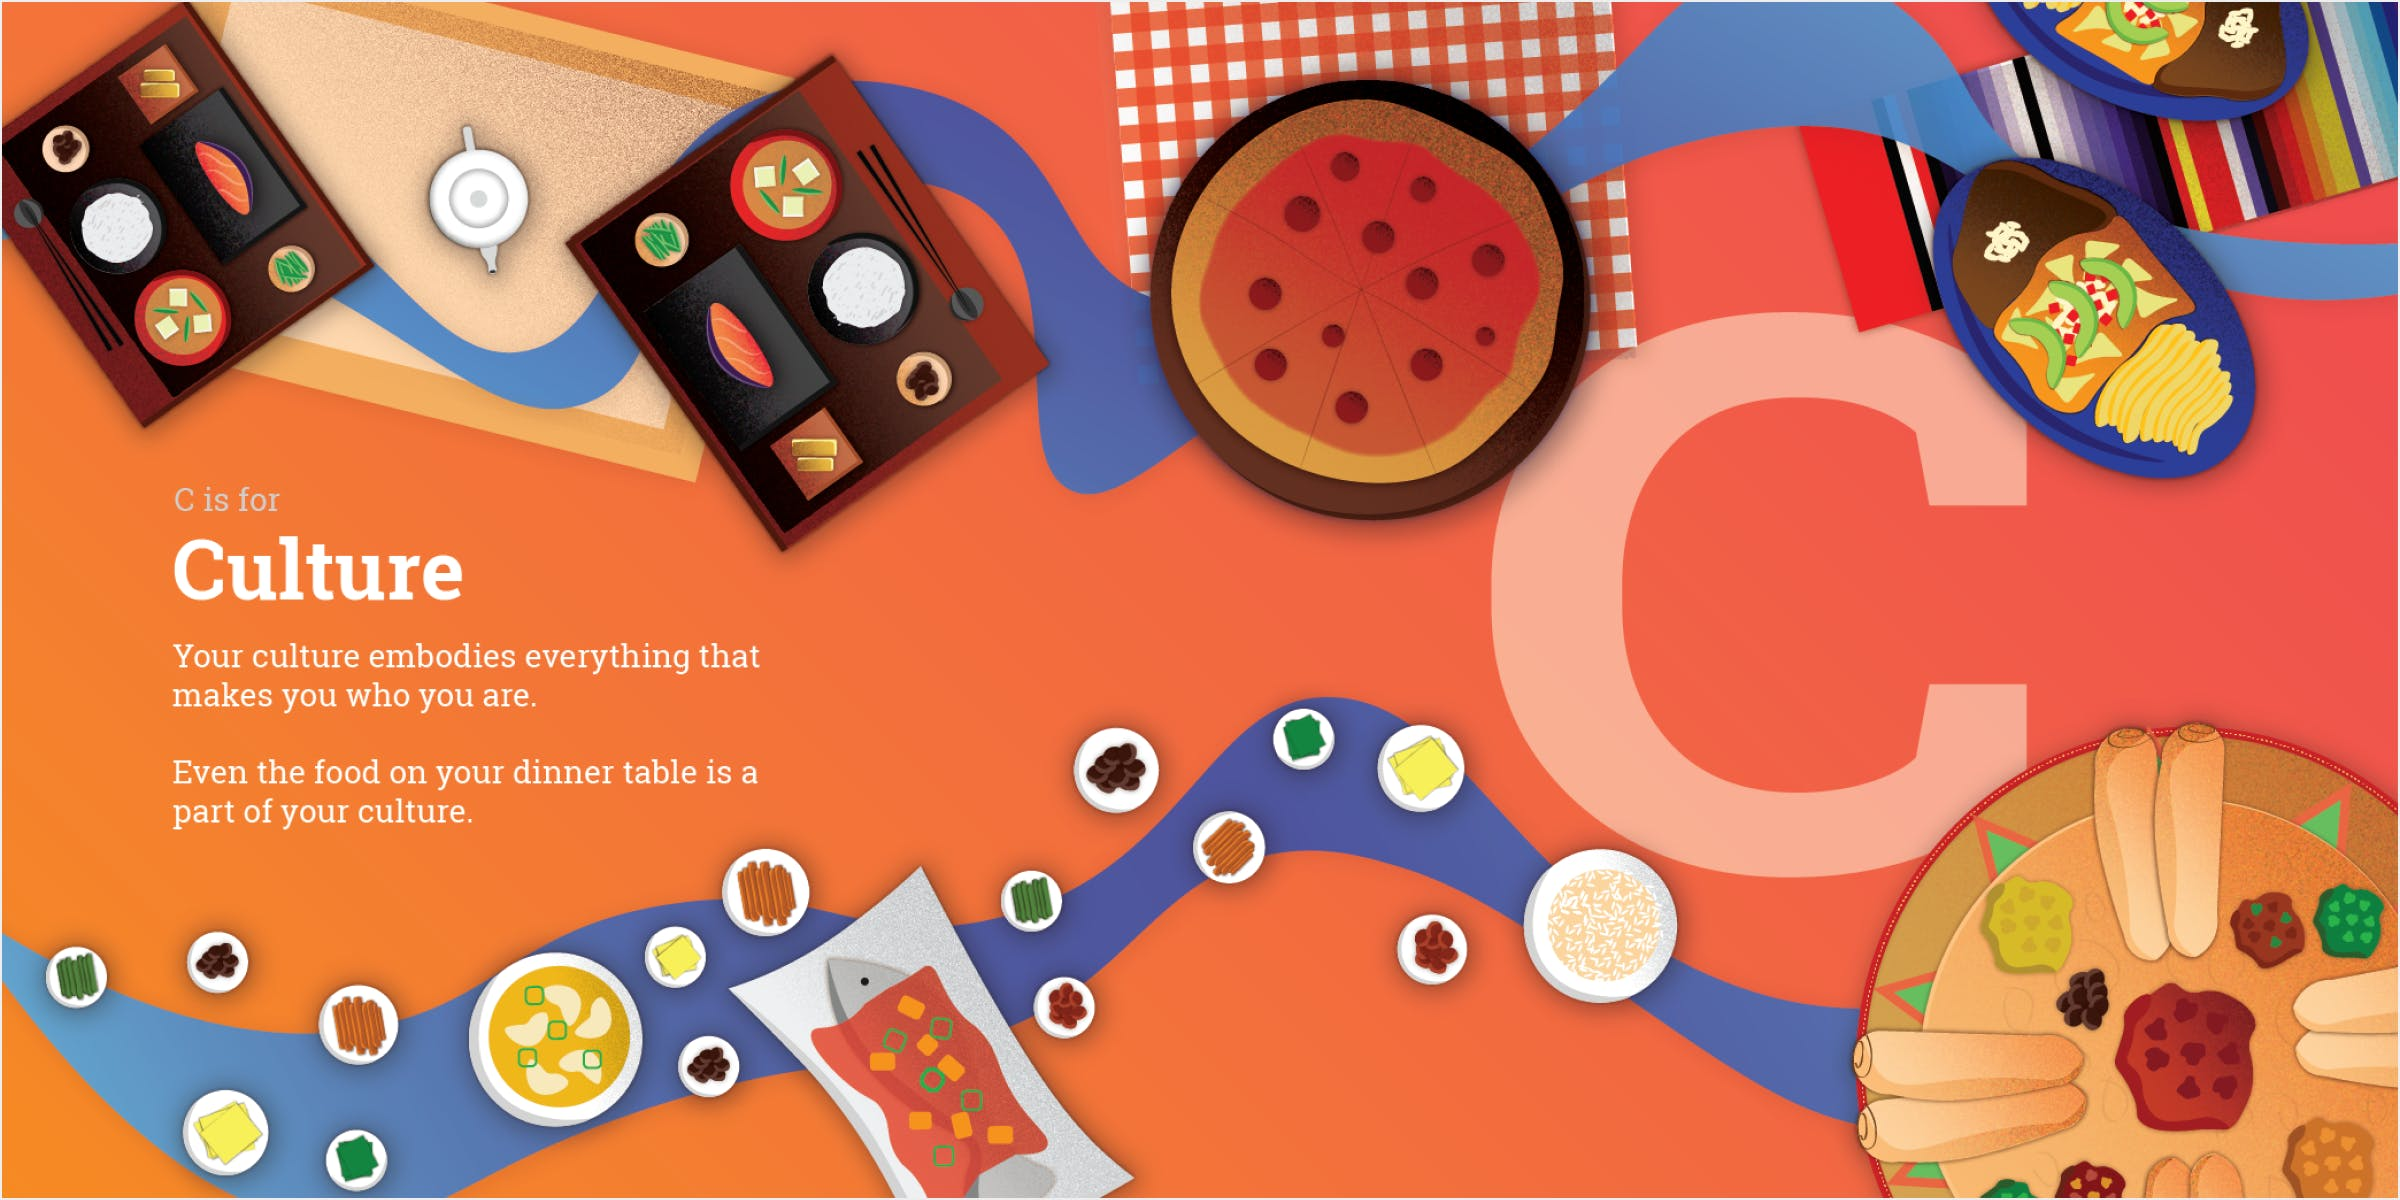 Two-page spread representing a dinner table with an assortment of culture's traditional meals.